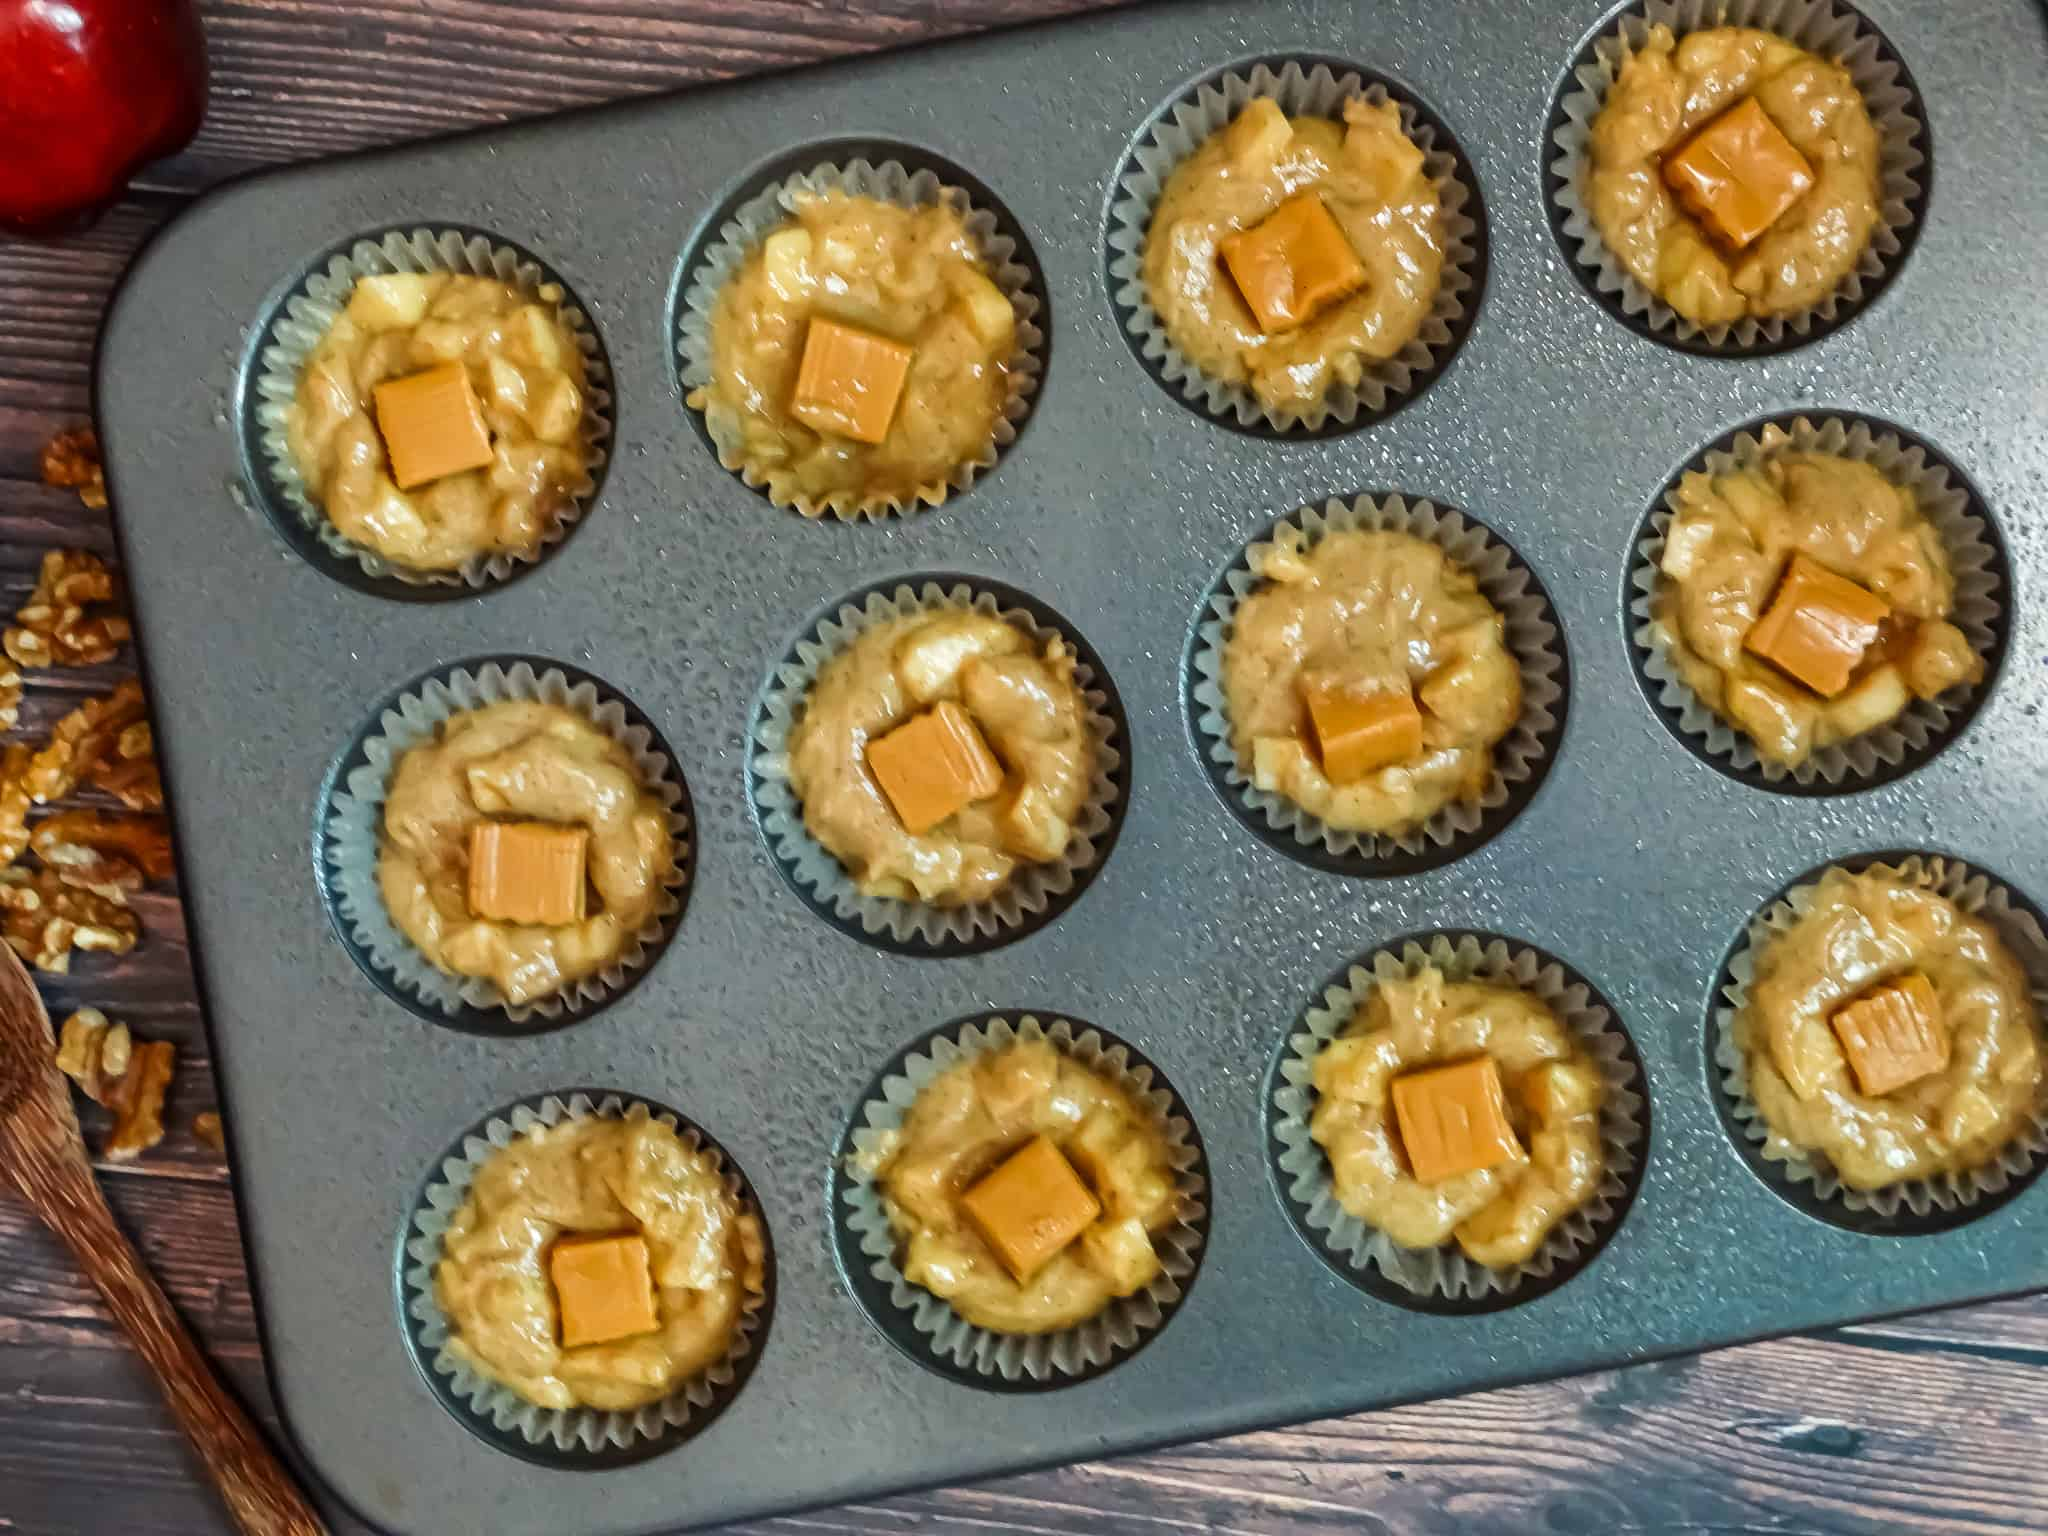 muffin batter in a tin with caramel on top